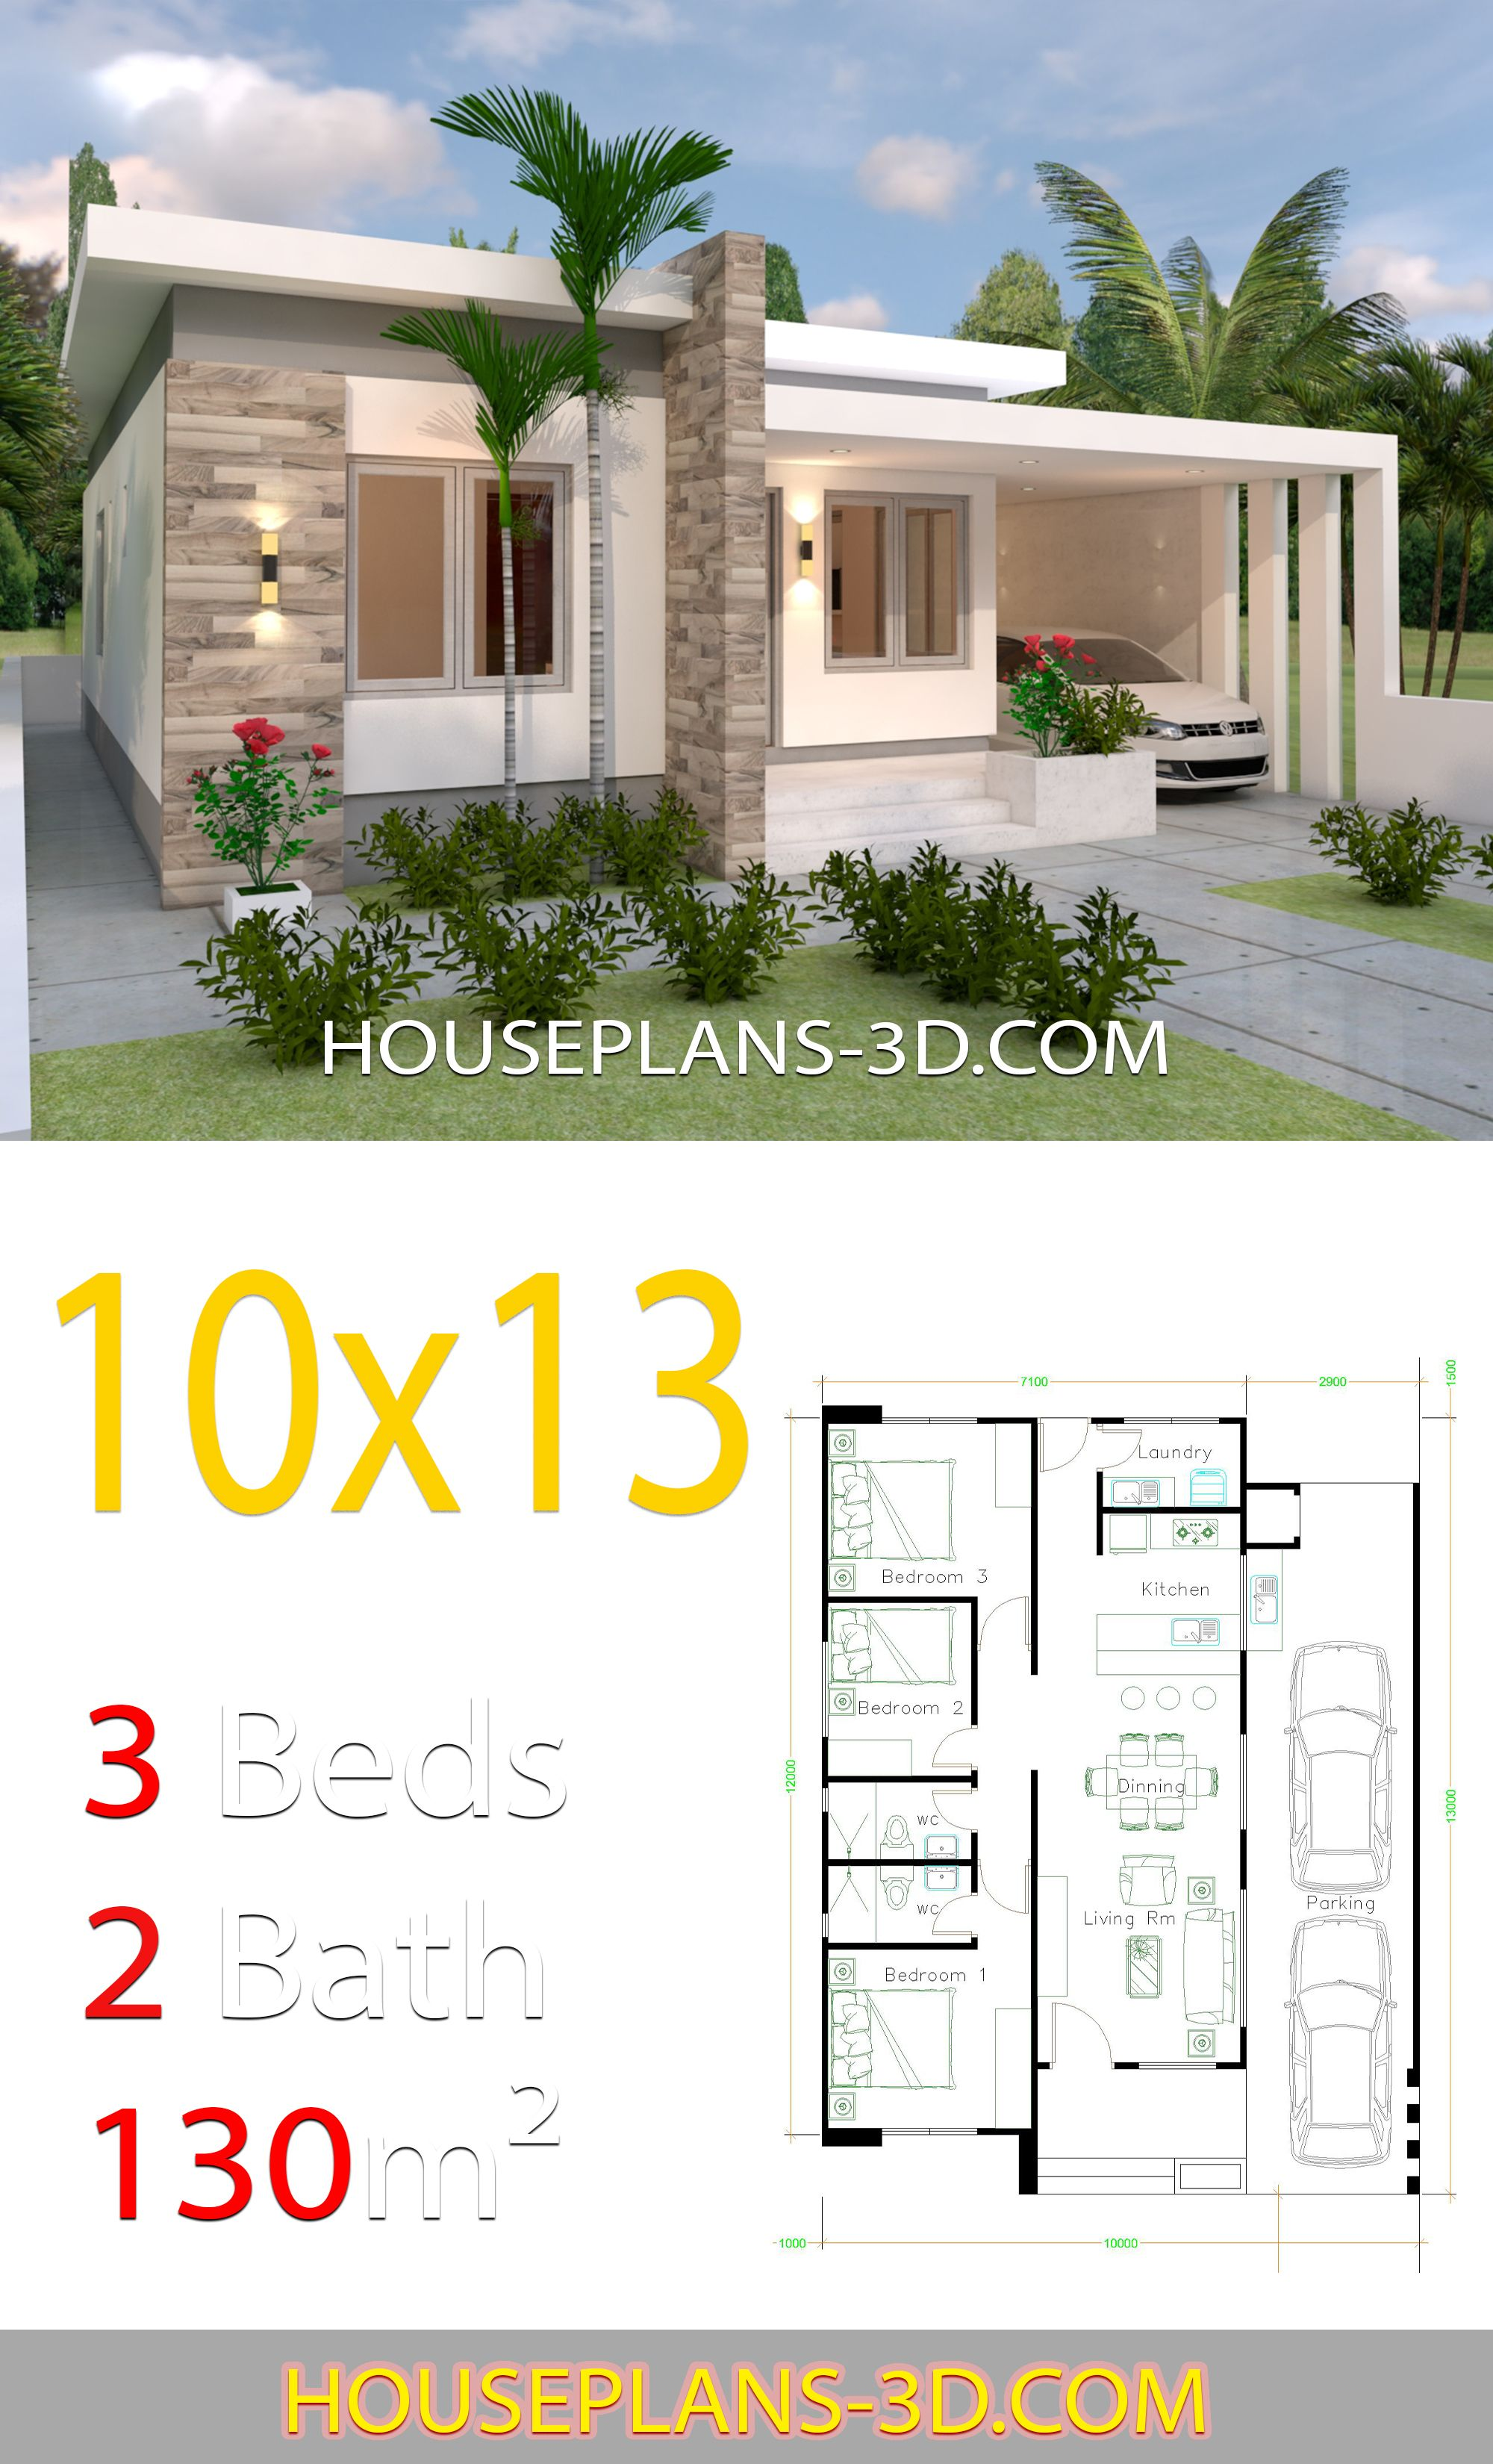 House Design 10x13 With 3 Bedrooms Full Plans House Plans 3d In 2020 House Construction Plan Modern Bungalow House Small House Design